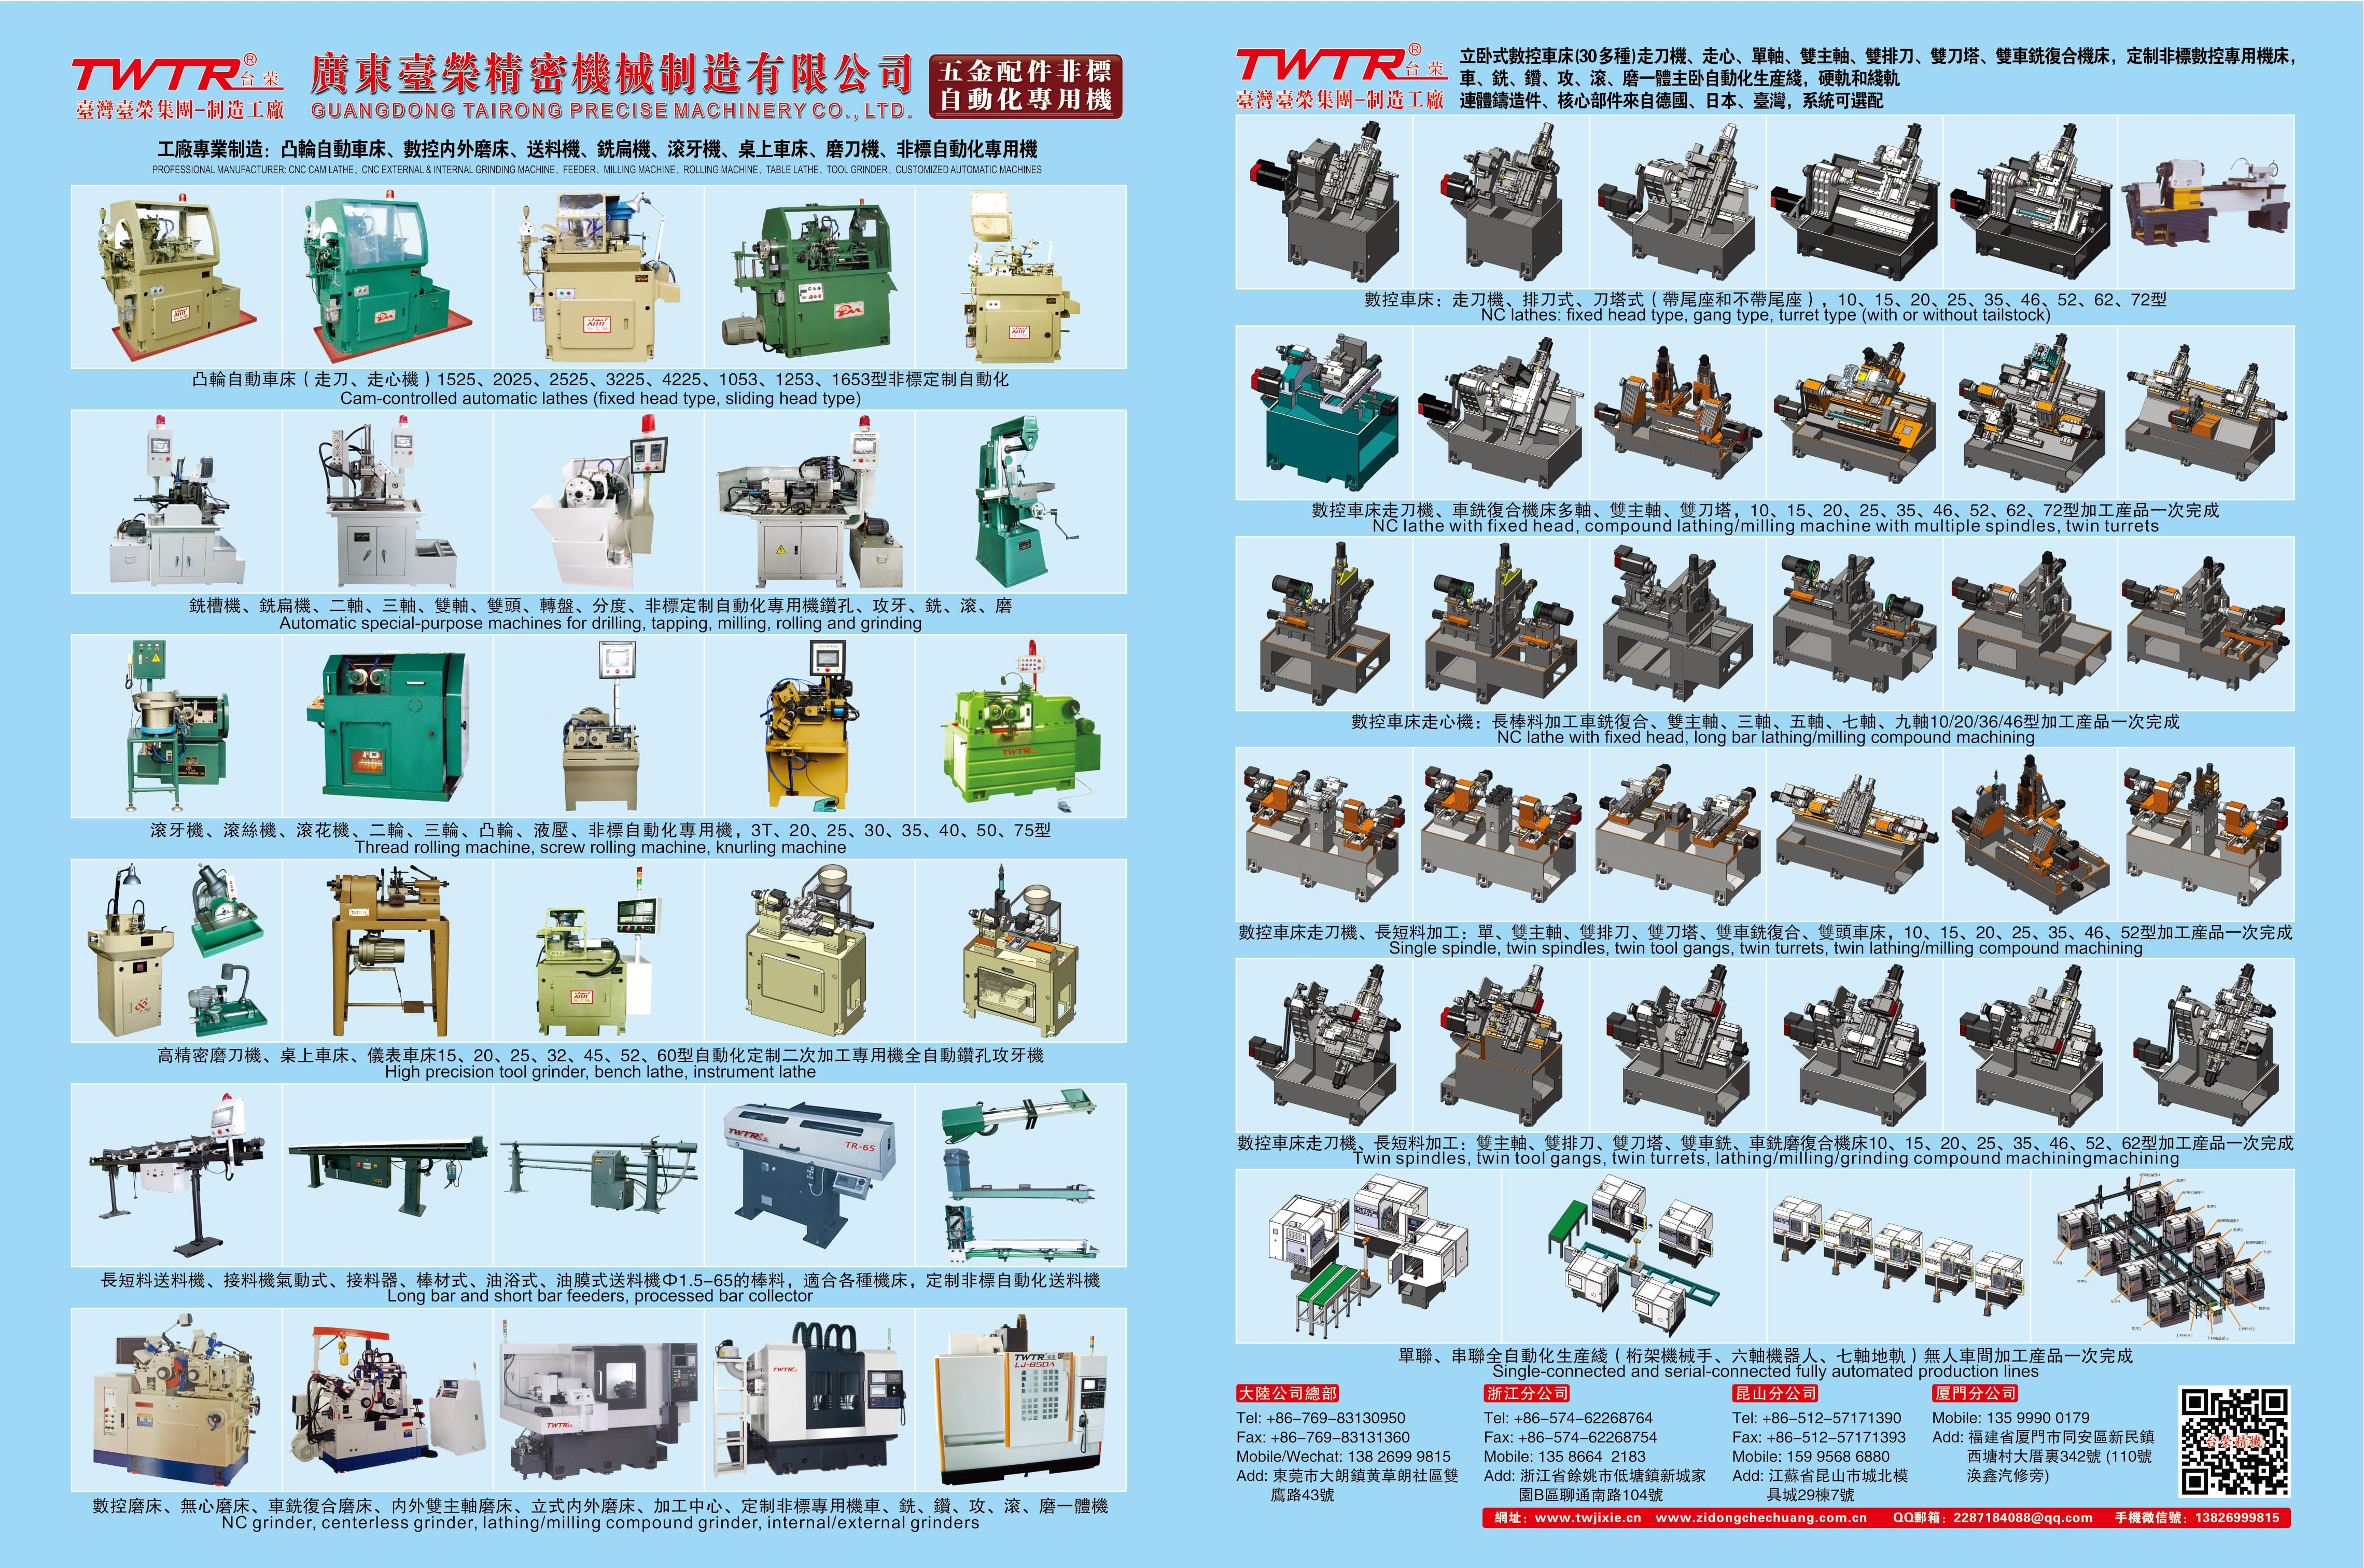 GUANGDONG TAIRONG PRECISE MACHINERY CO., LTD.